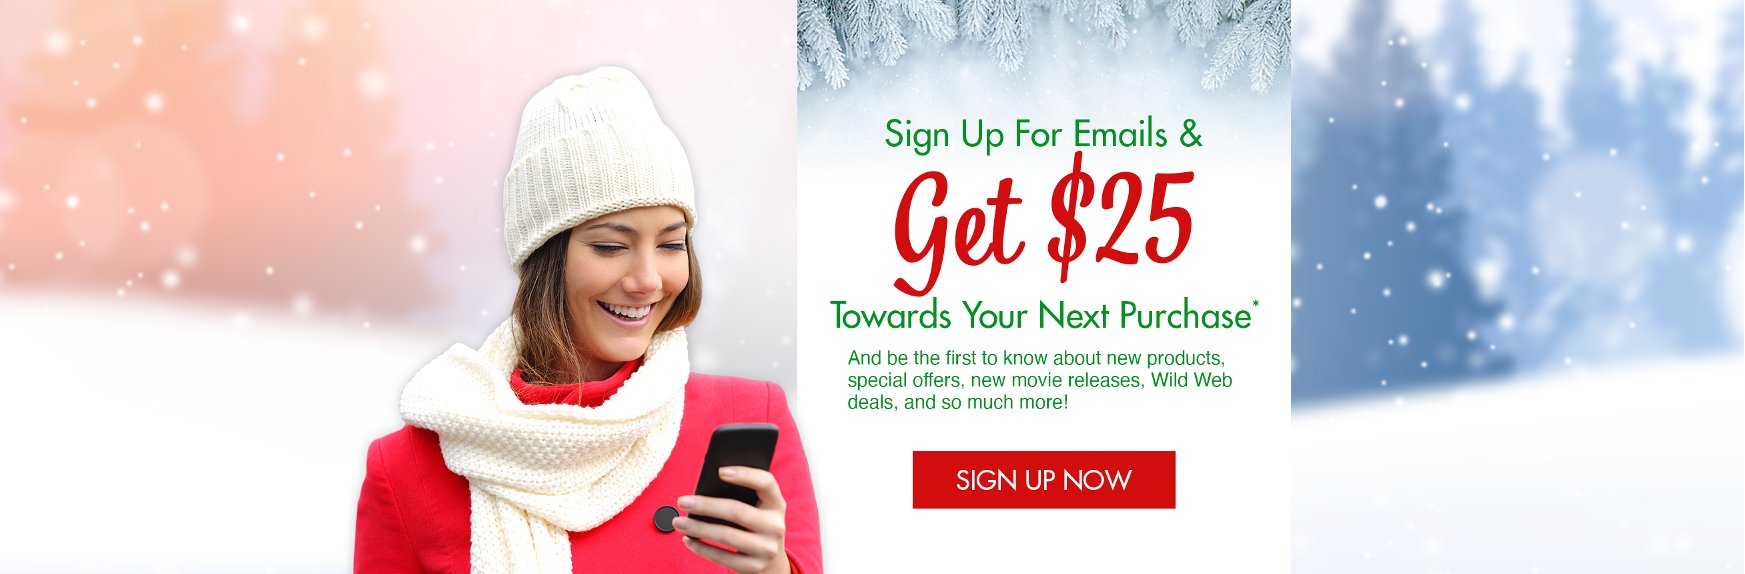 Sign Up for Emails from RC Willey and Save on Home Furnishings